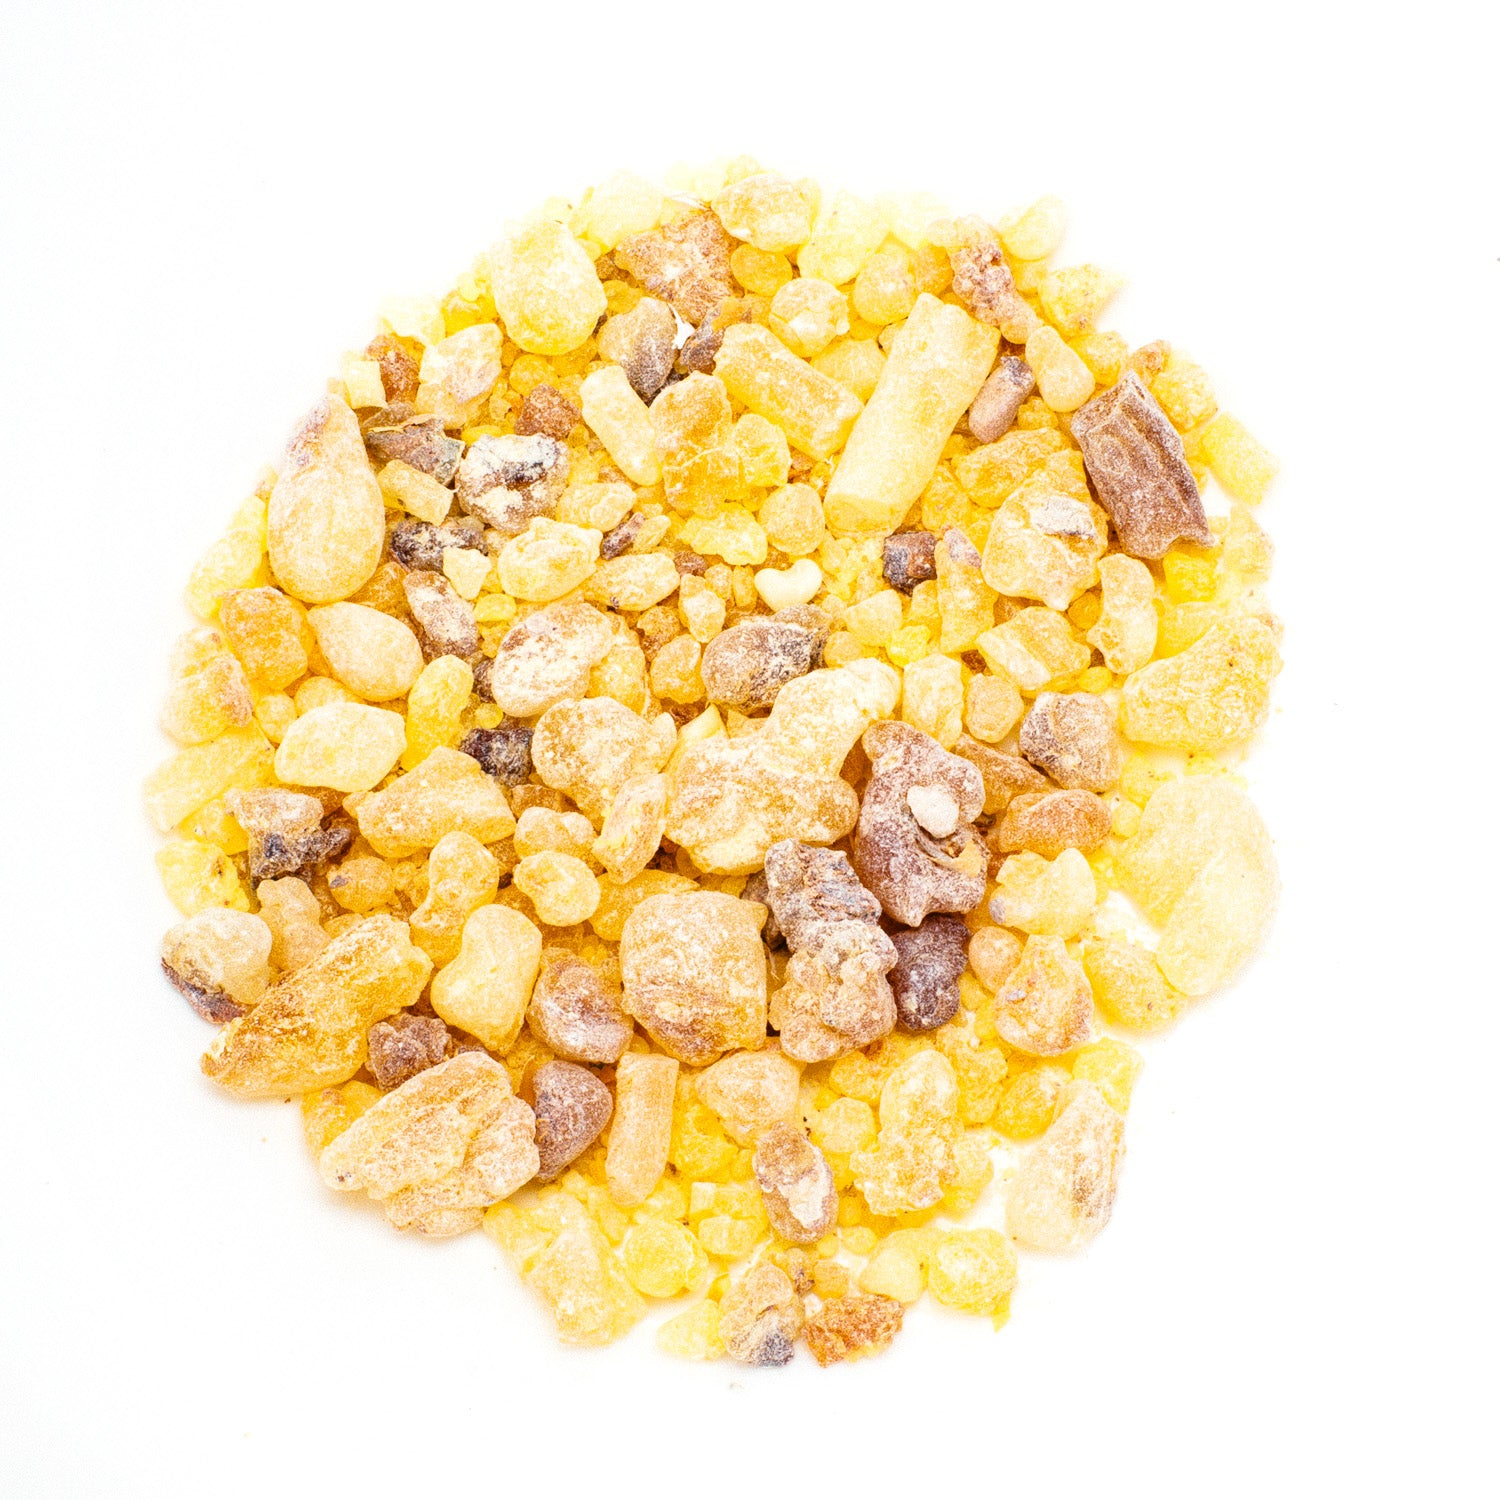 Frankincense Resin Incense from Ethiopia